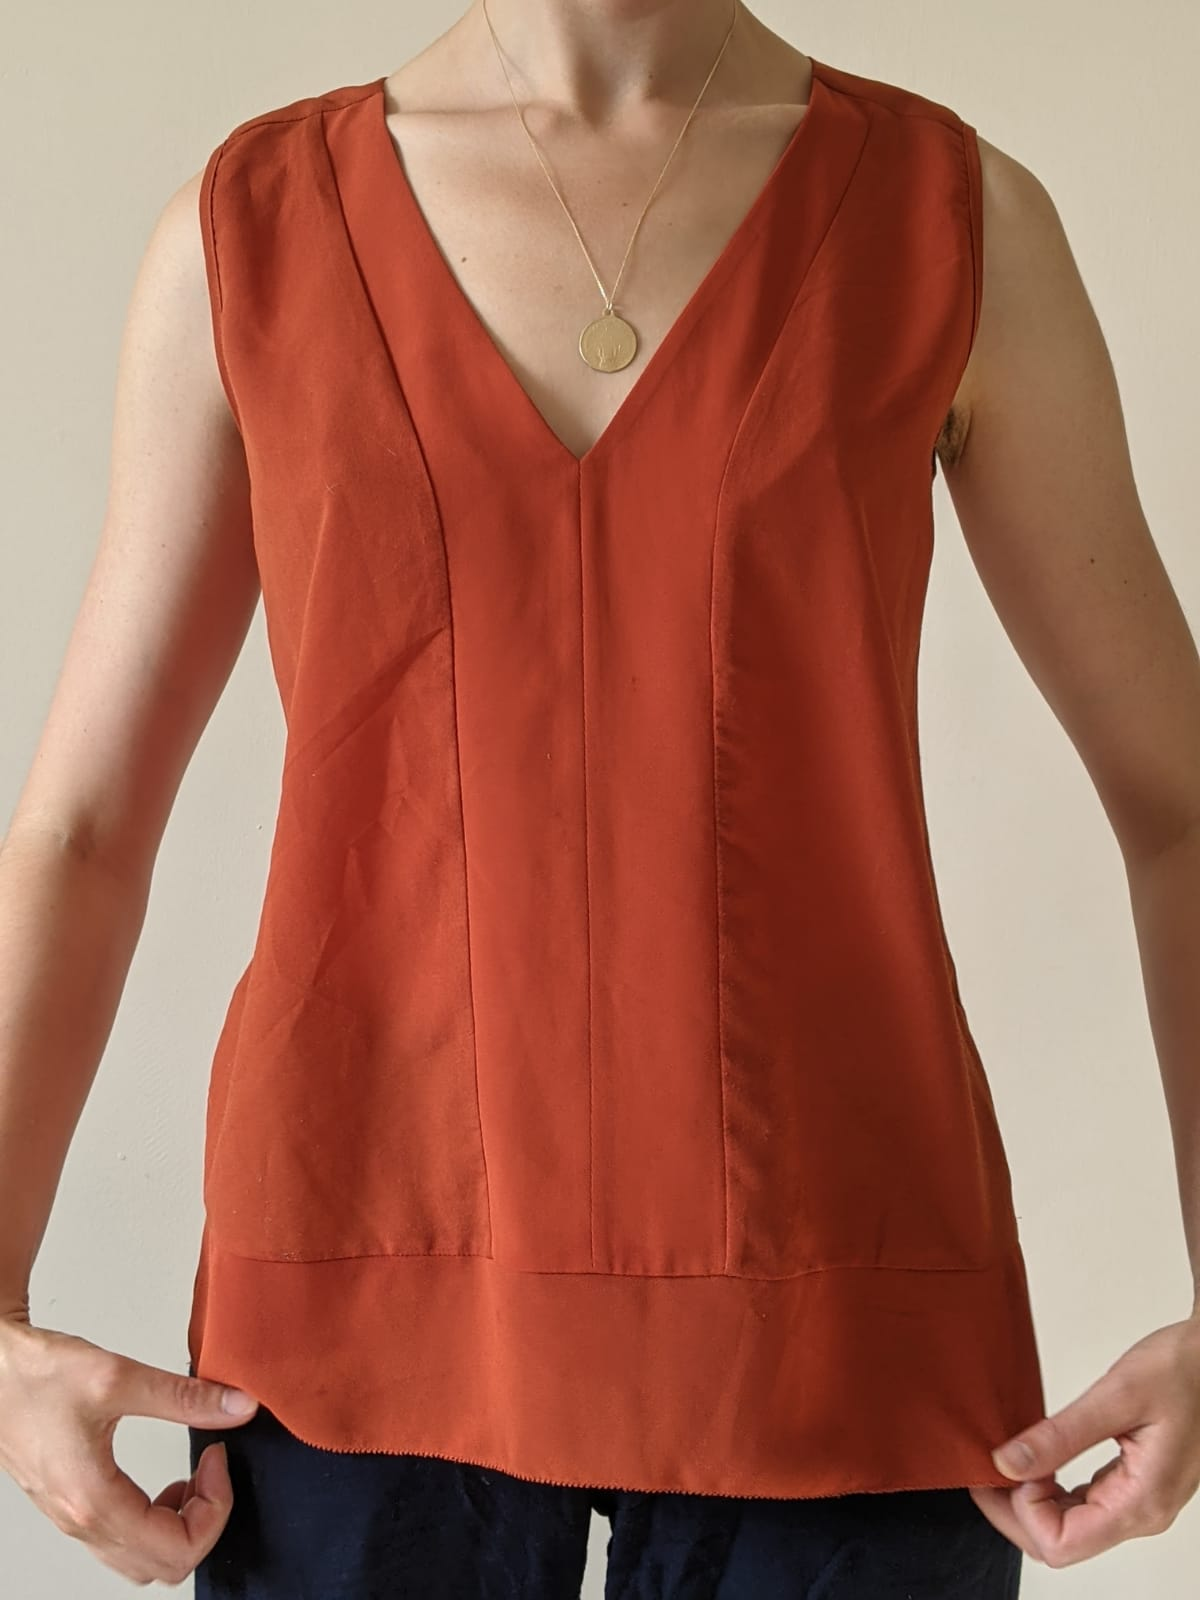 Image of French connection  French connection XS burnt orange sleeveless top